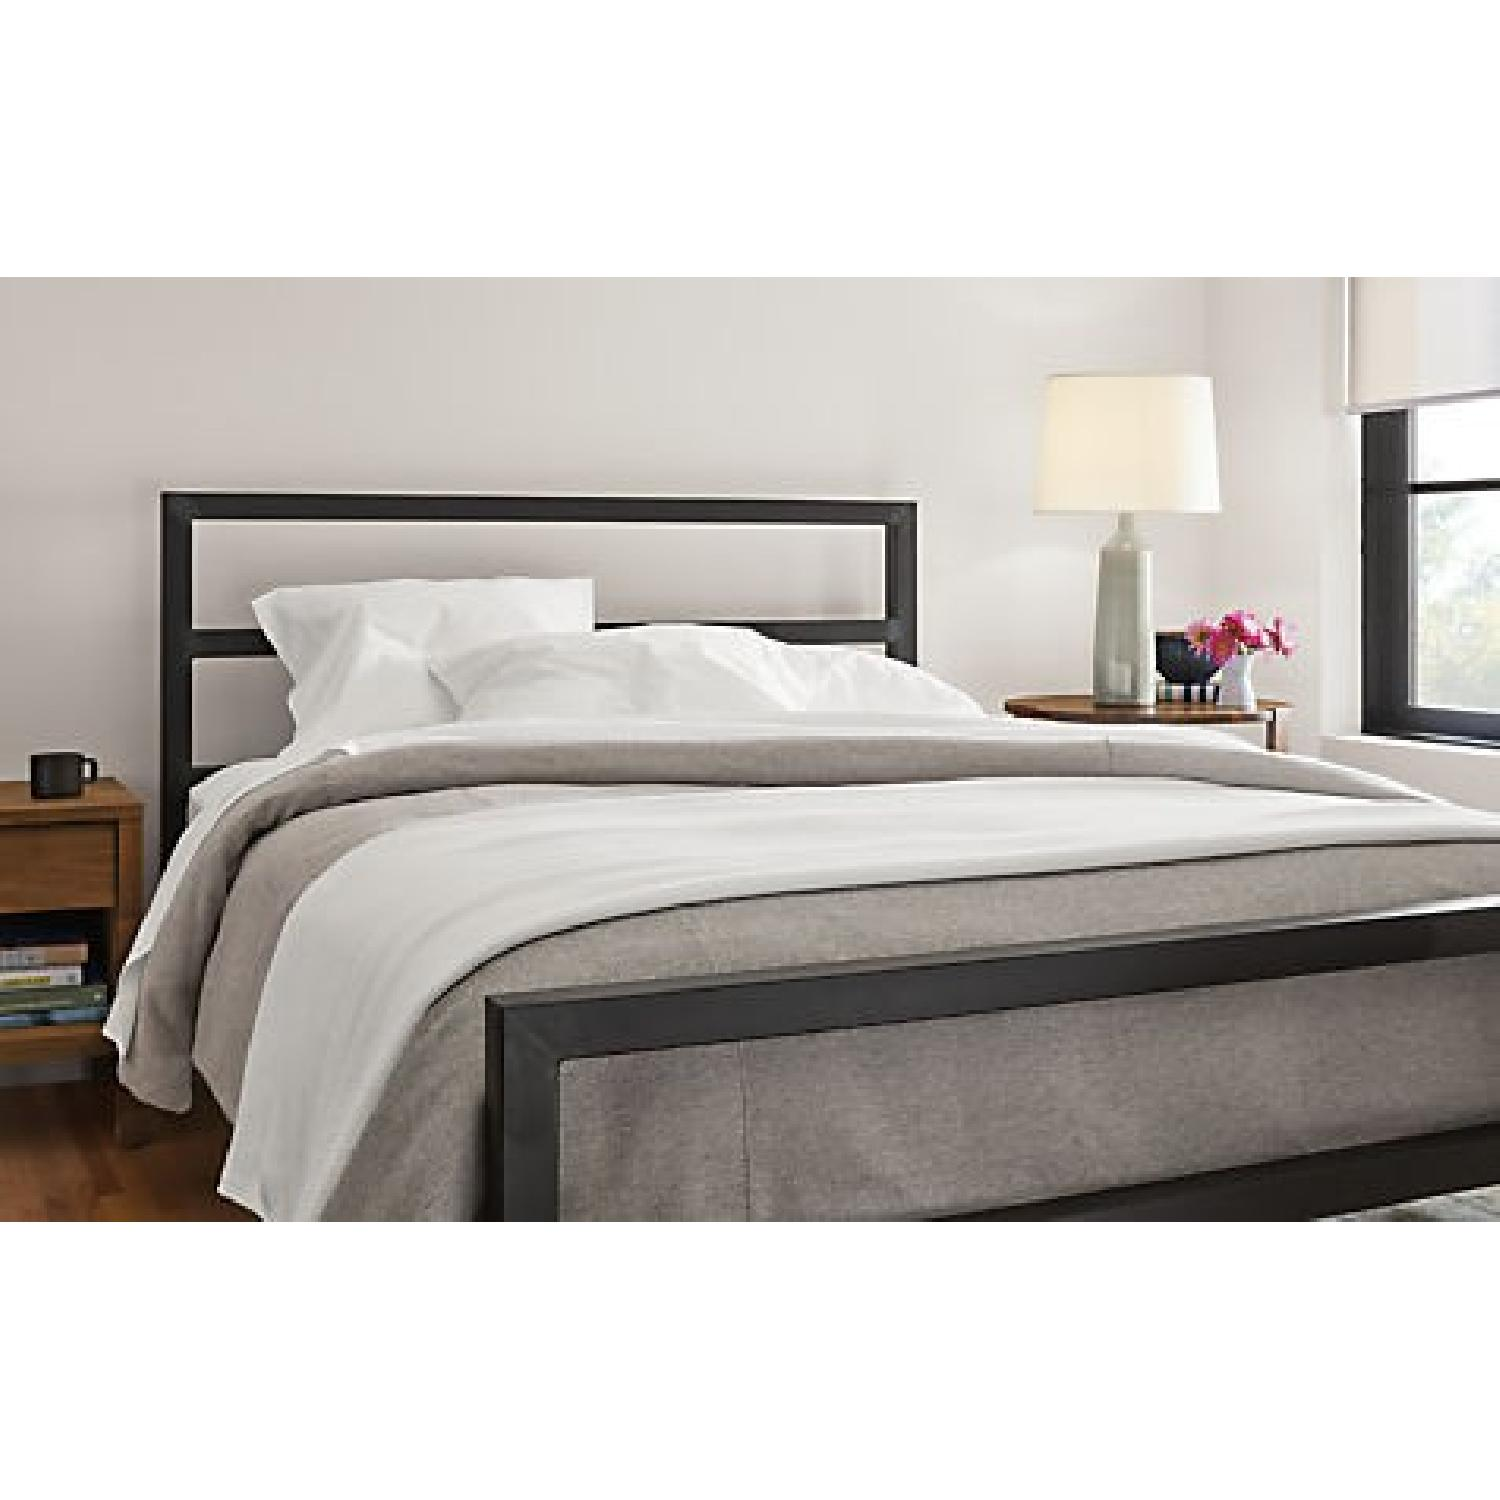 Room & Board Parsons Natural Steel Bed-1